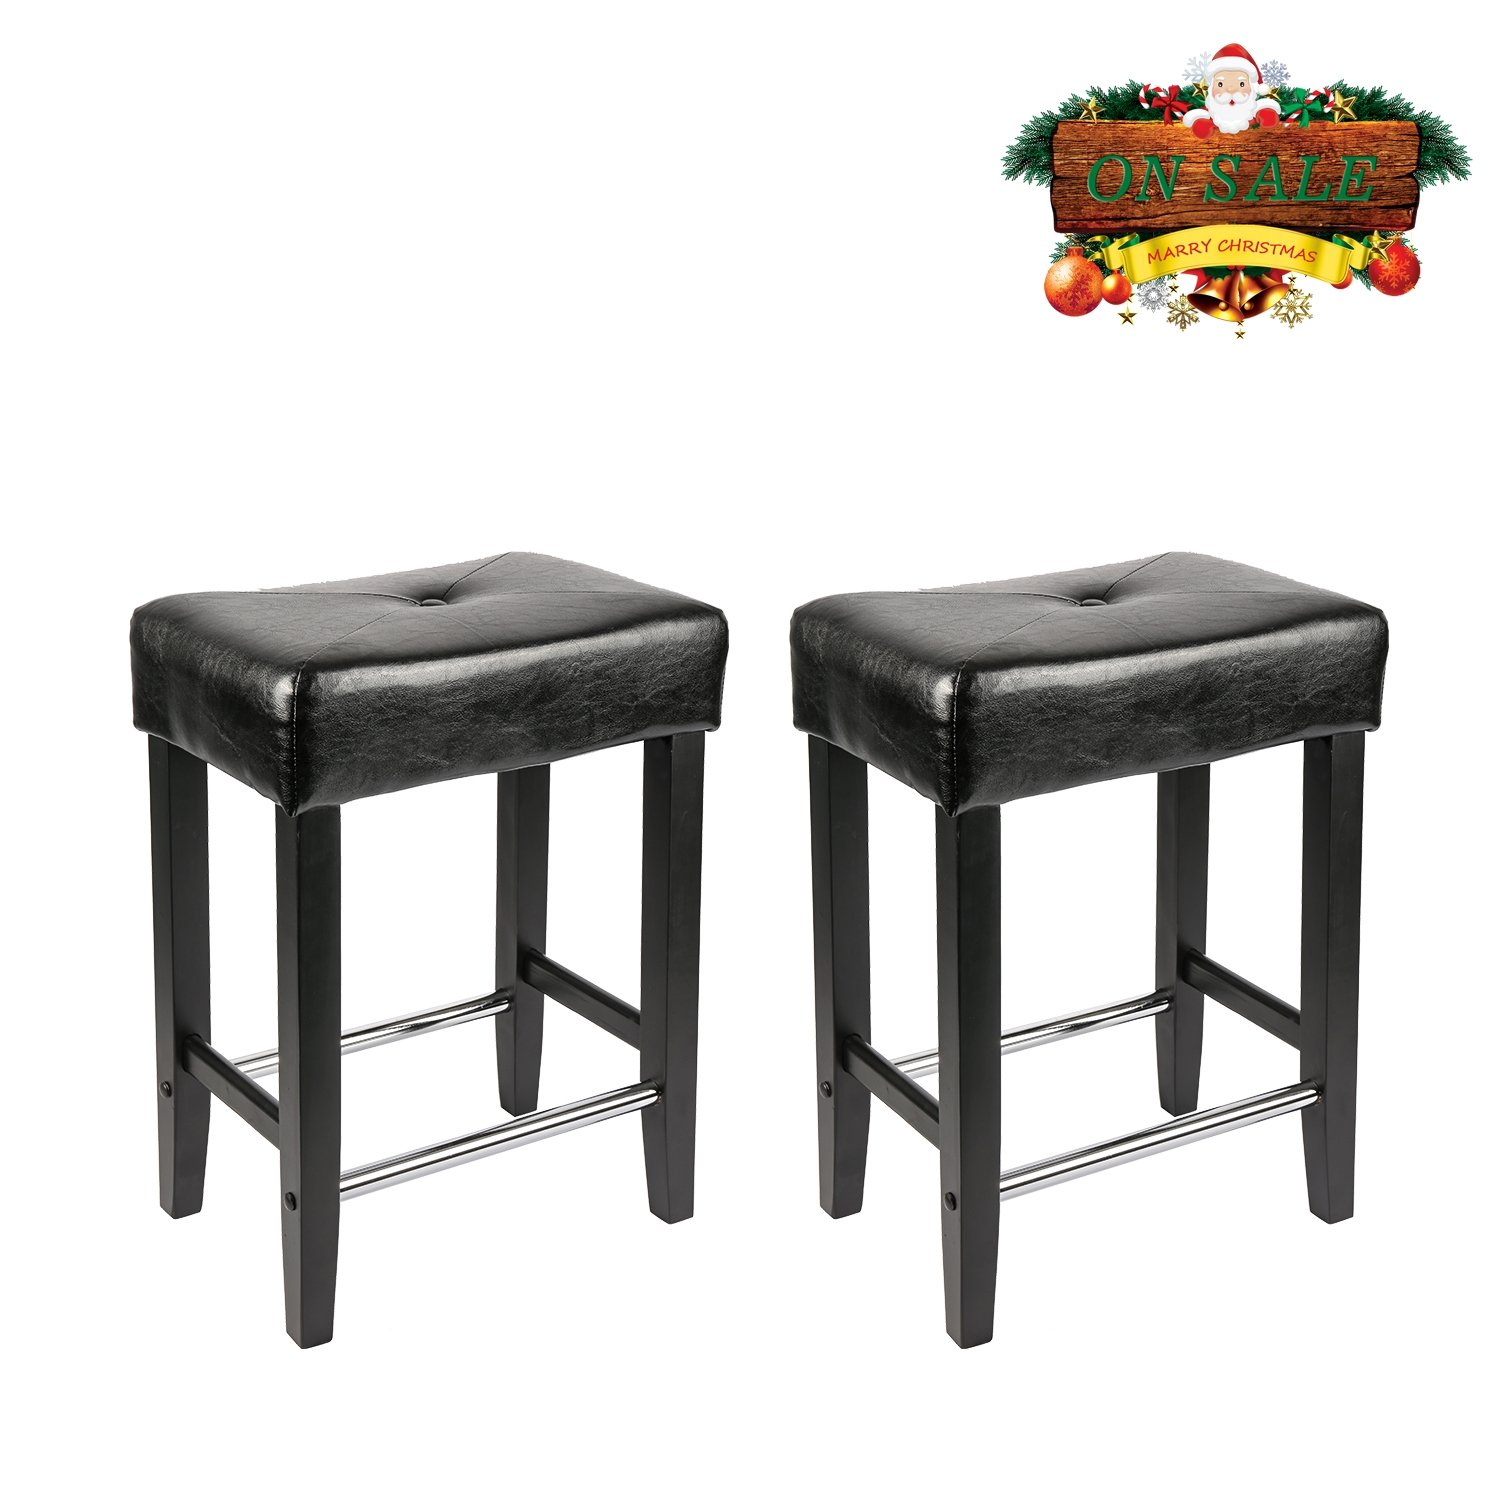 Cheap 24 Inch Wood Bar Stools Find 24 Inch Wood Bar Stools Deals On